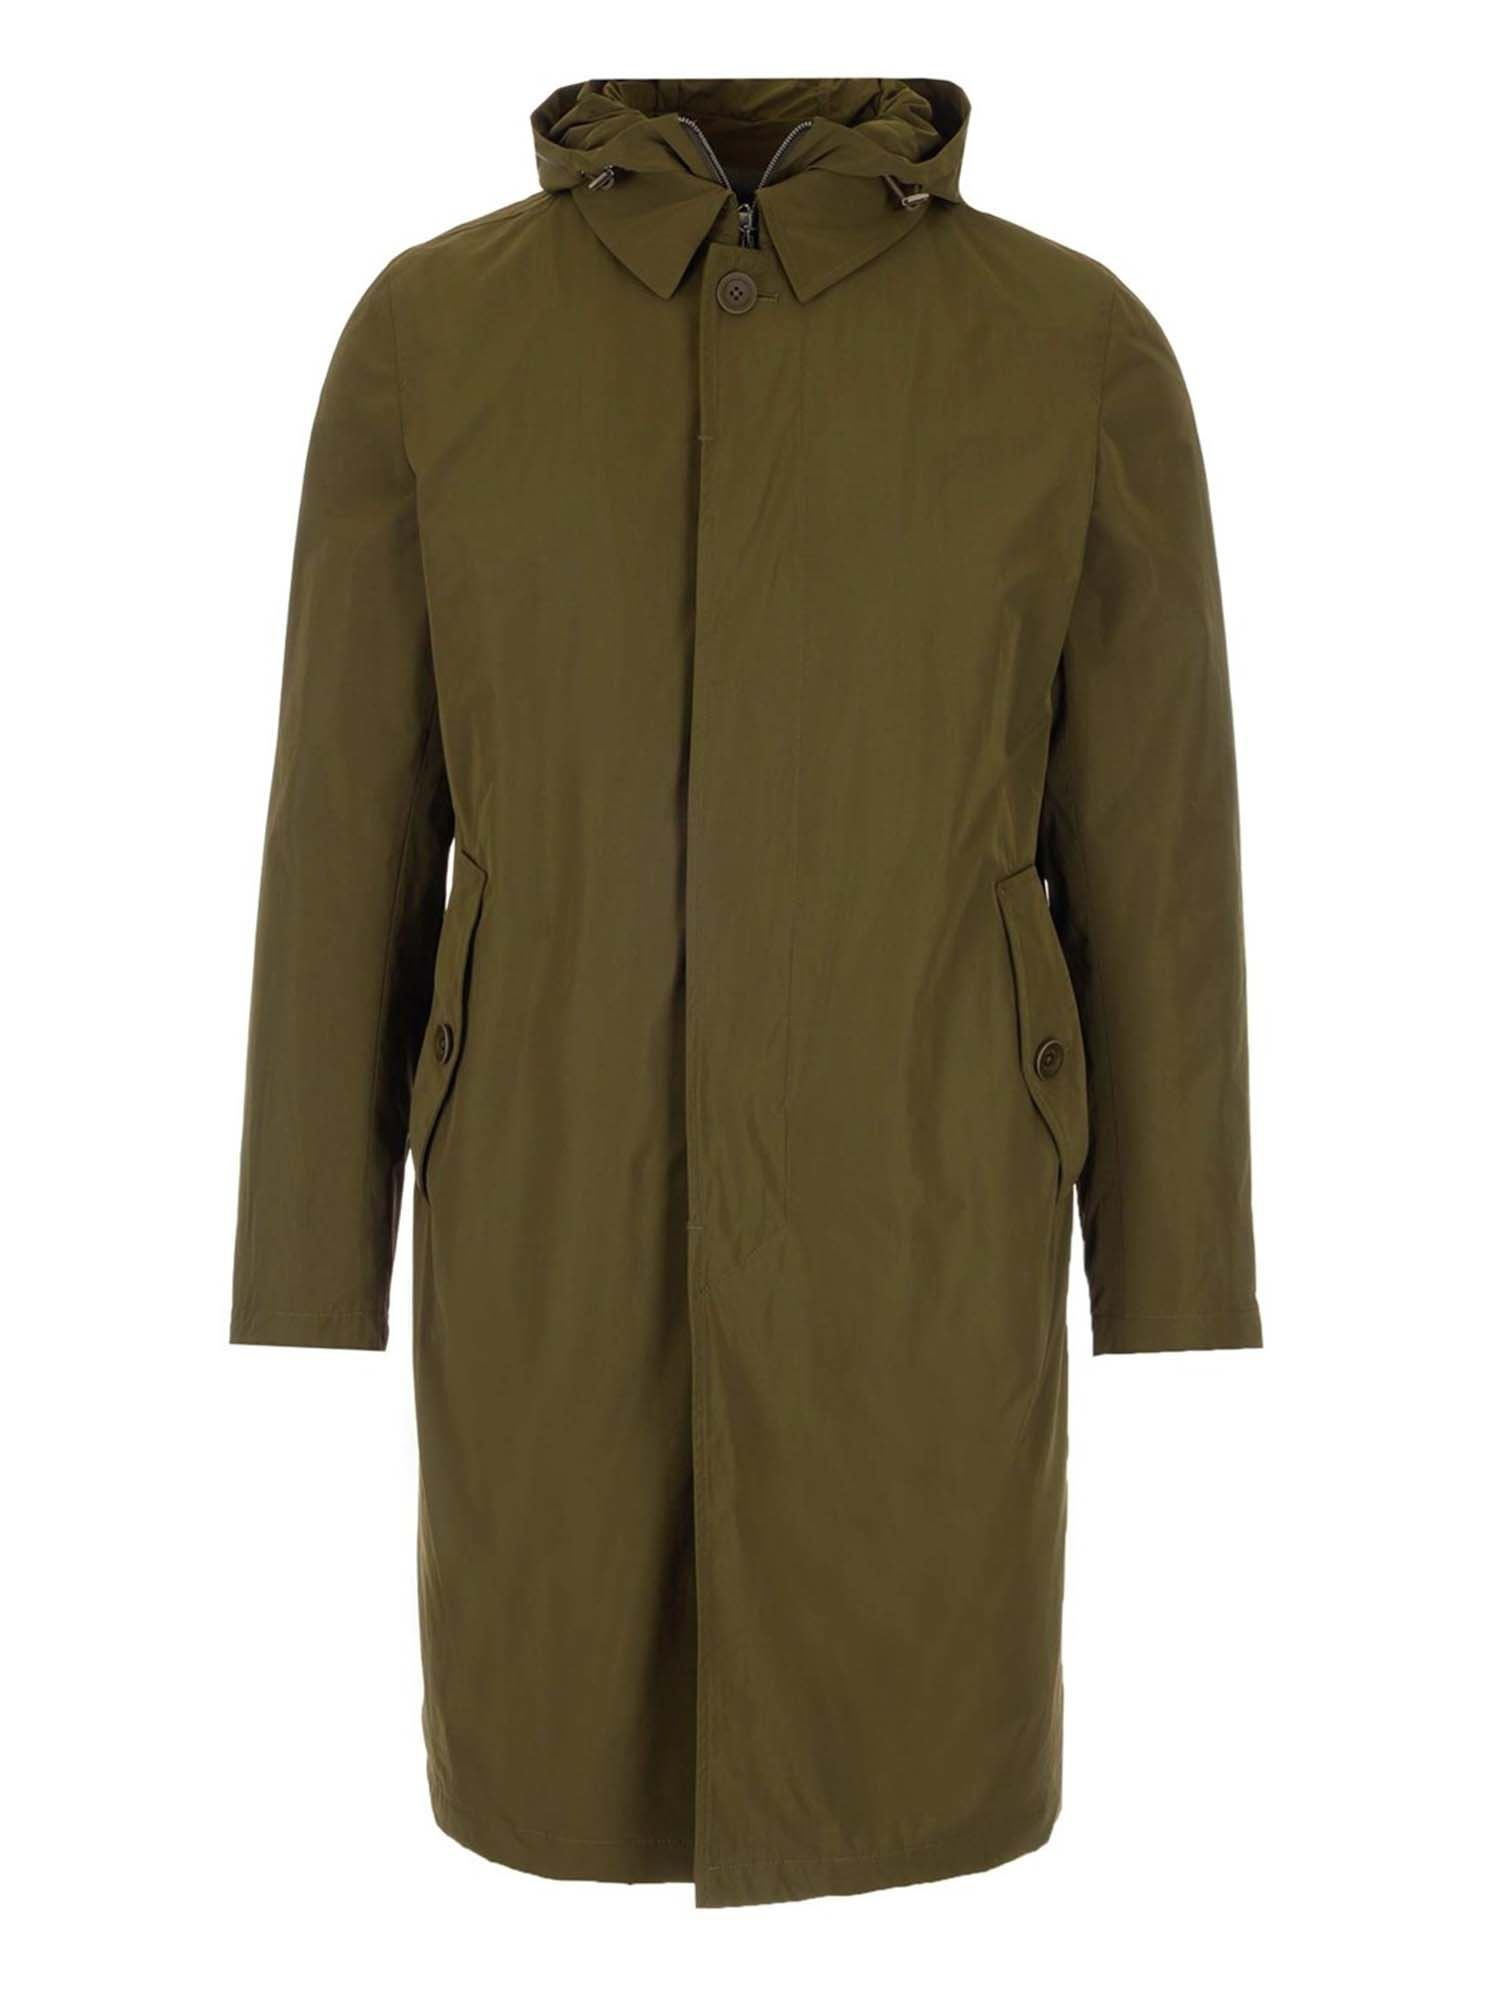 Herno Linings LONG RAINCOAT IN ARMY GREEN